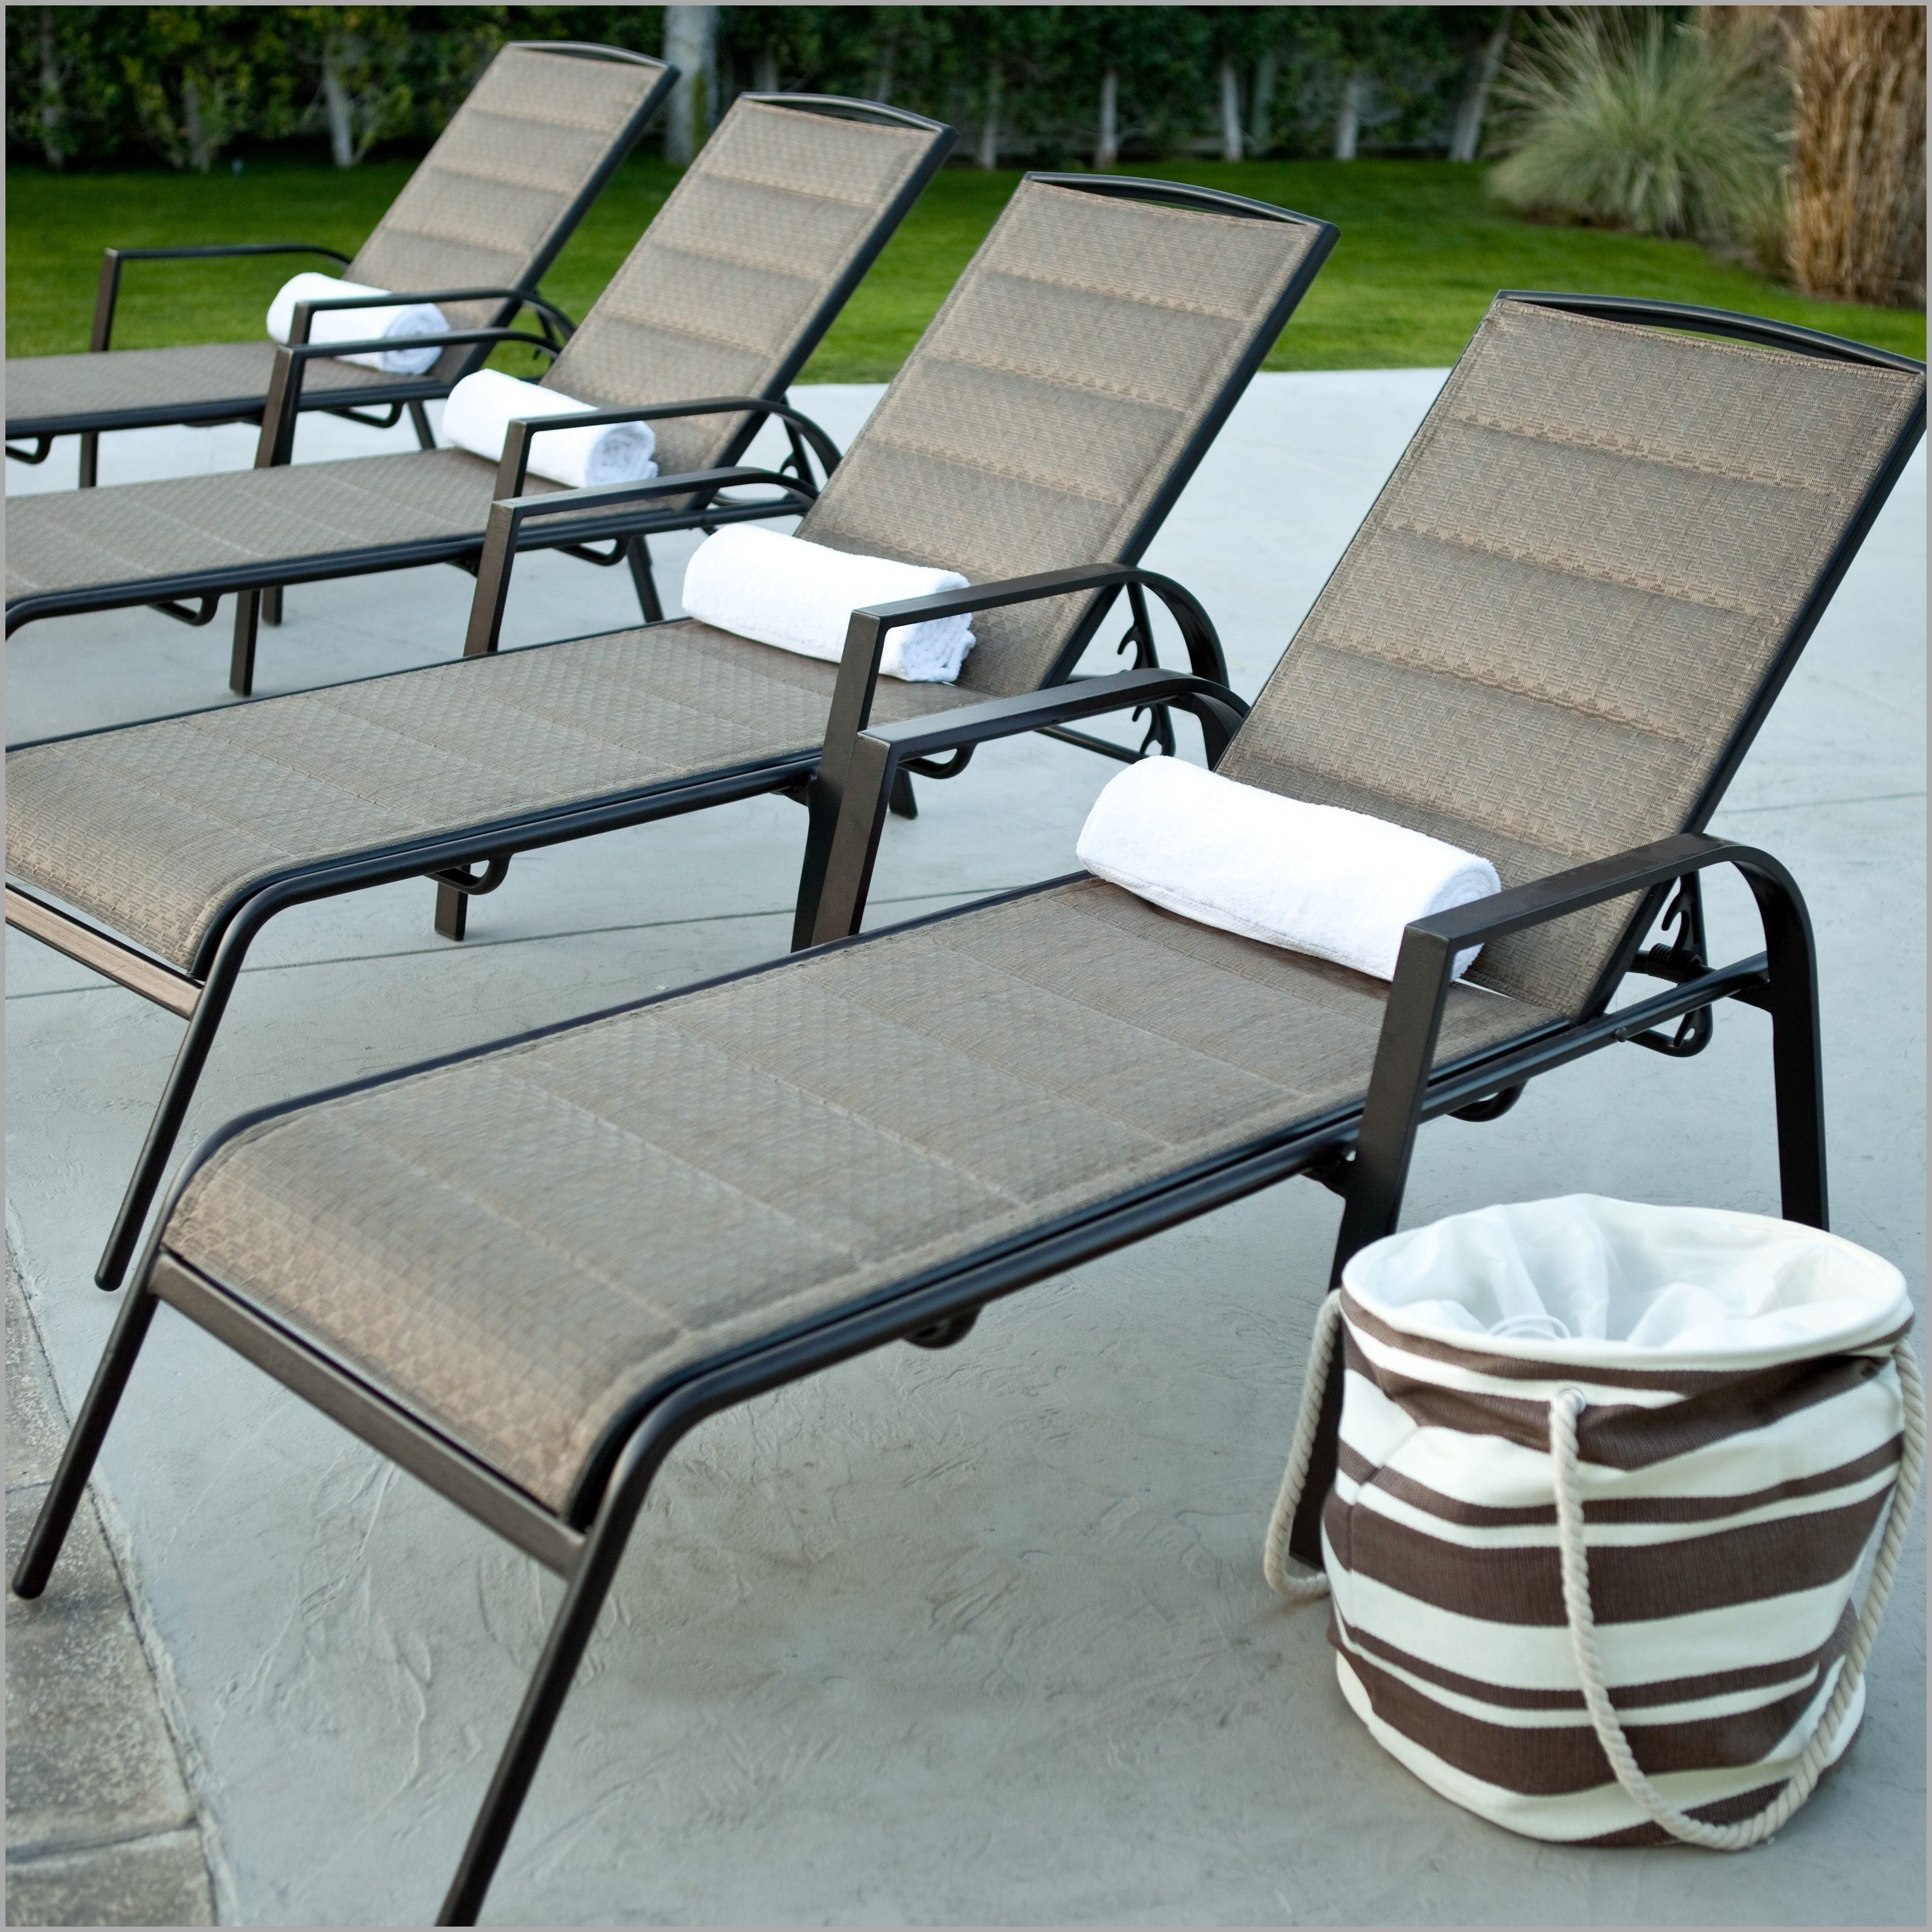 Recent Chaise Lounge Chairs For Poolside Pertaining To Extraordinary Pool Chaise Lounge Chairs Decorative 600357 – Chair (View 11 of 15)